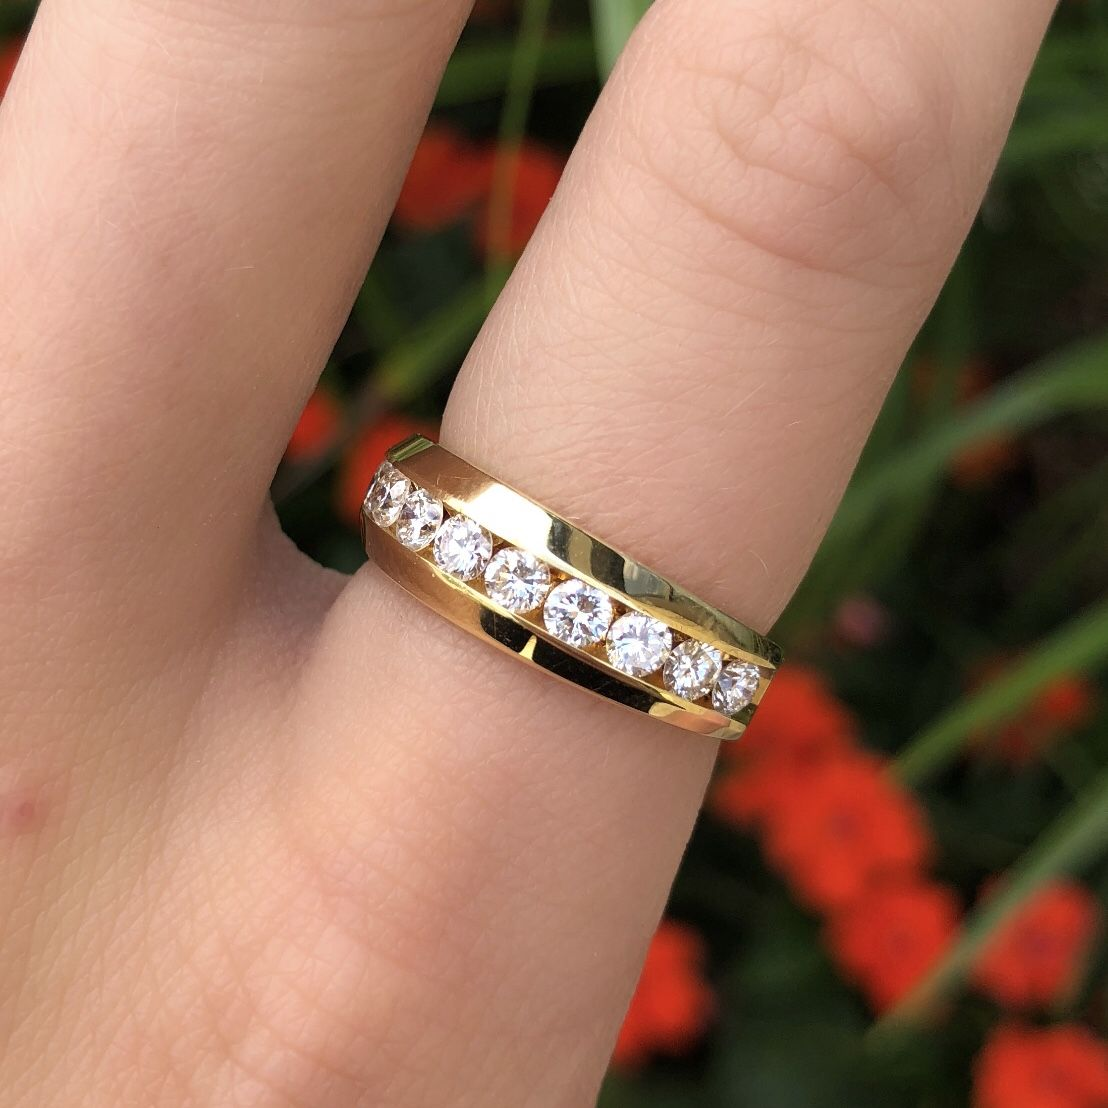 Engagement Rings Kansas City: Yellow Gold Diamond Band. Annual Summer Sizzling Sale 2018